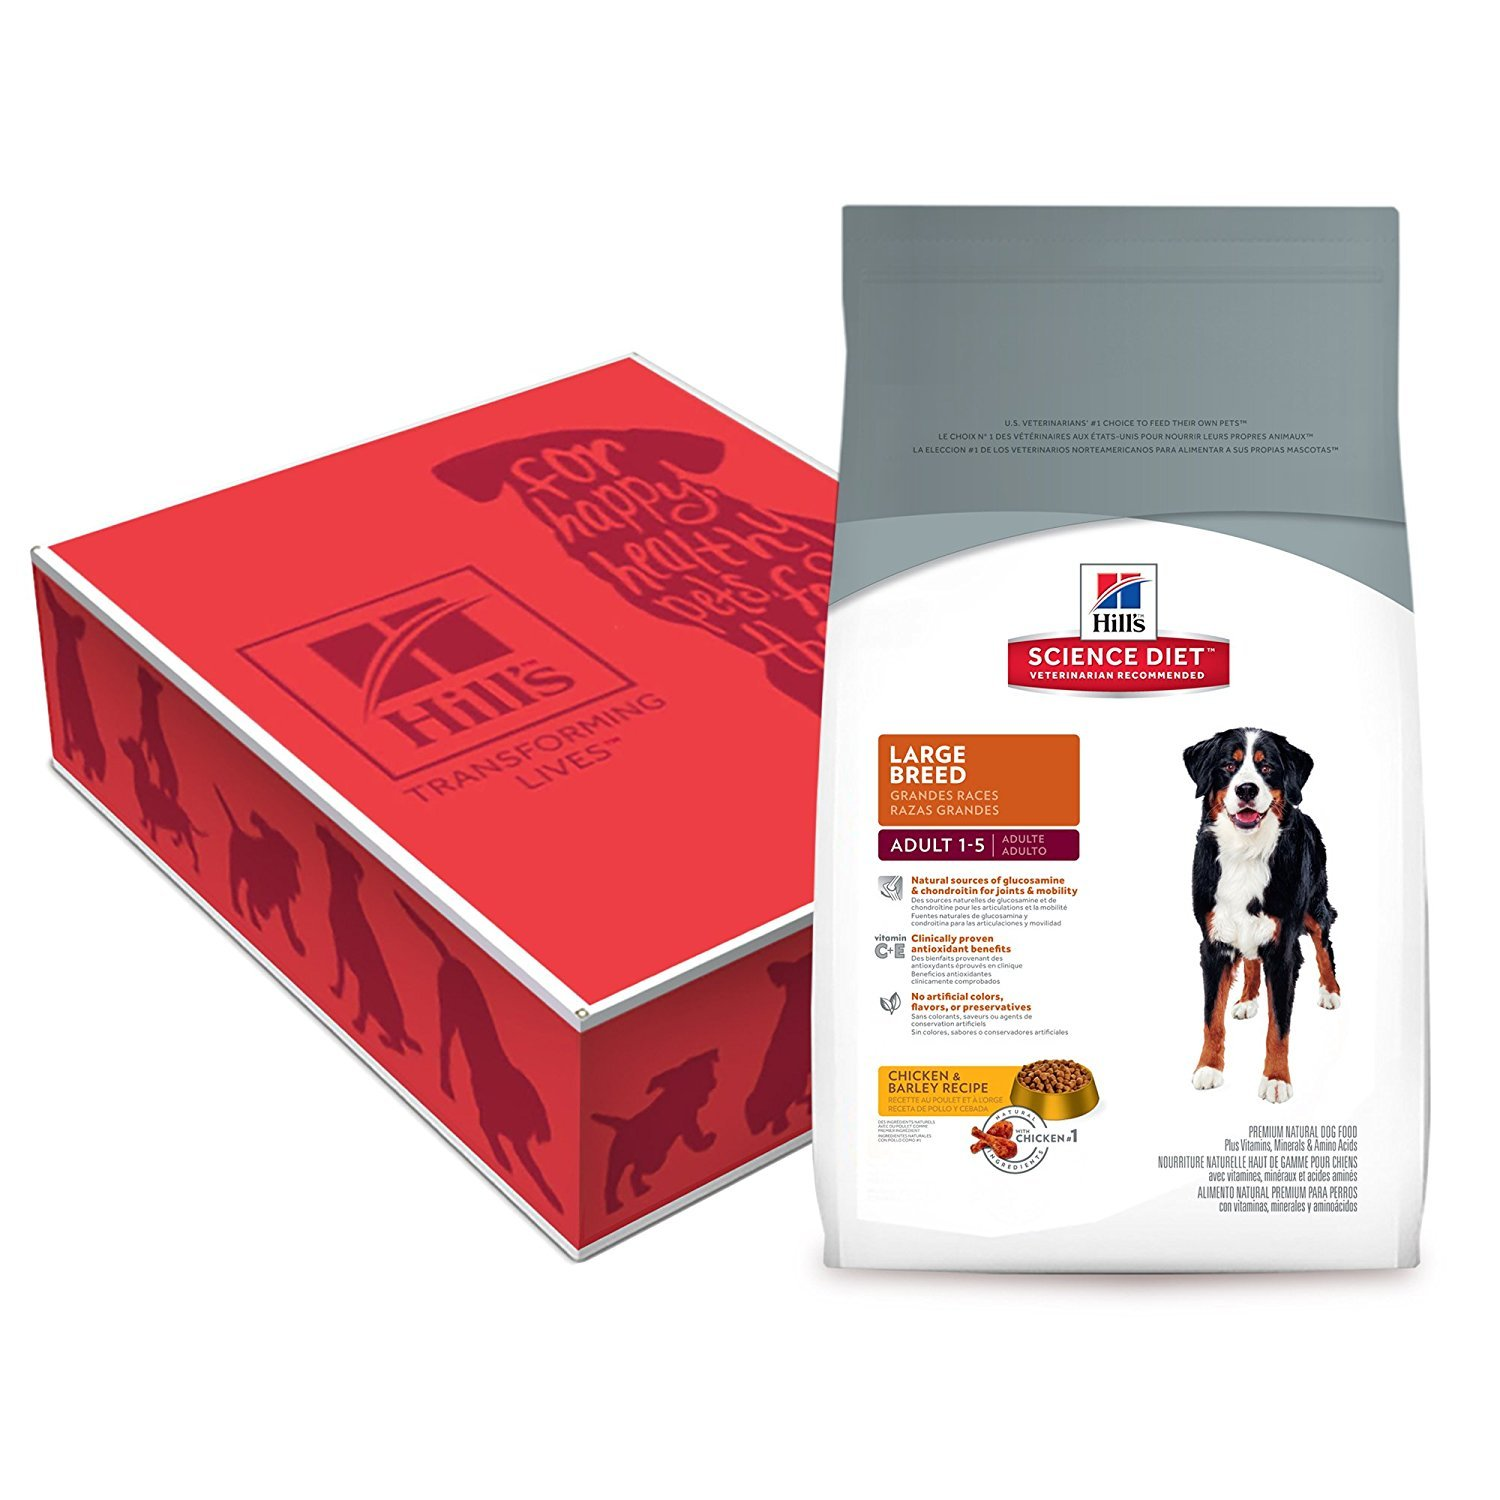 Hill's Science Diet Large Breed Dry Dog Food Adult Chicken & Barley 35 lb Bag